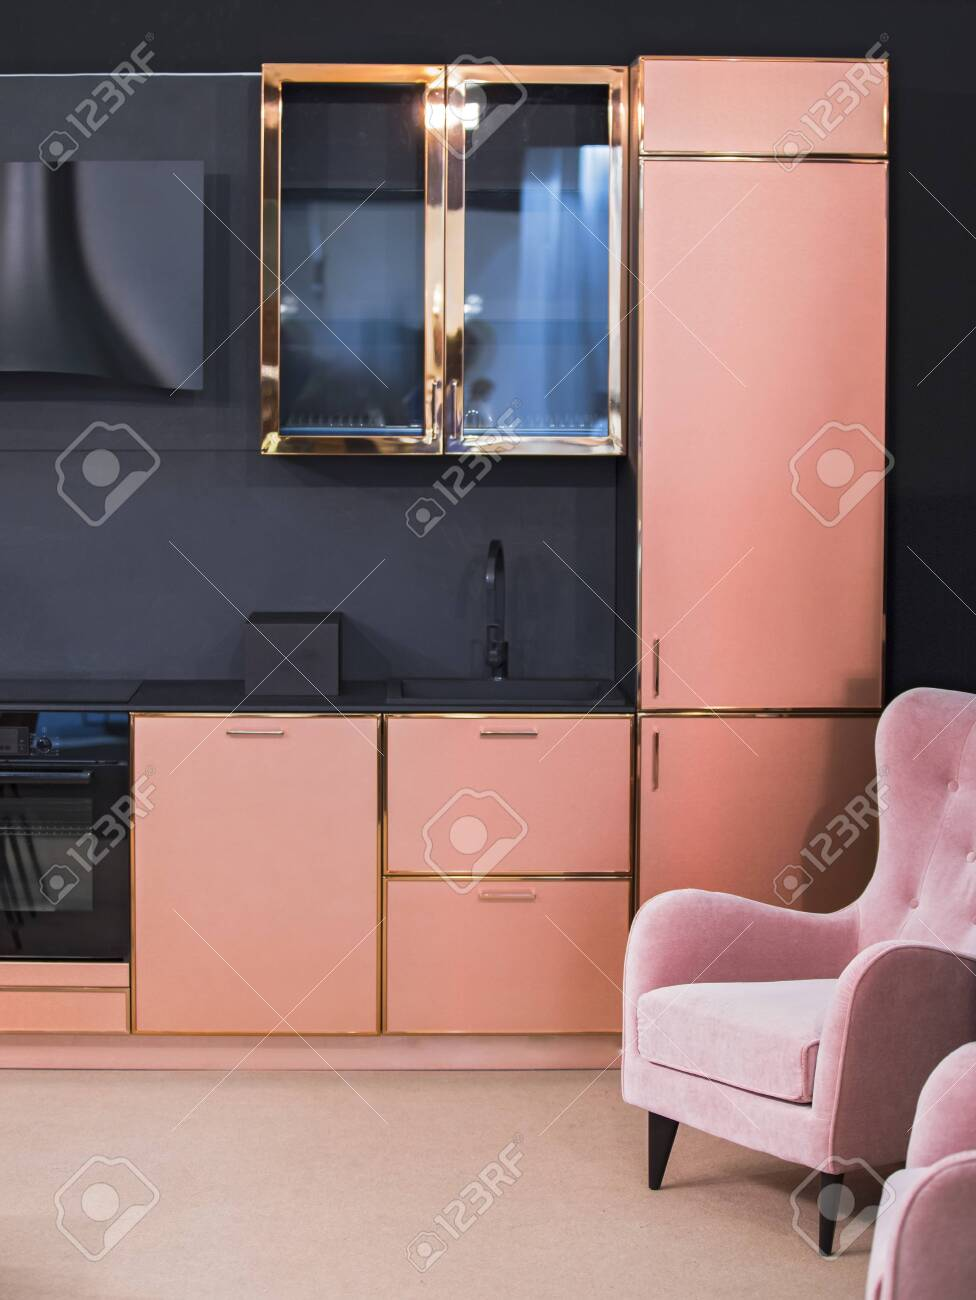 Kitchen Design Set Of Rose Gold Color Furniture Brass Finish Stock Photo Picture And Royalty Free Image Image 129018259